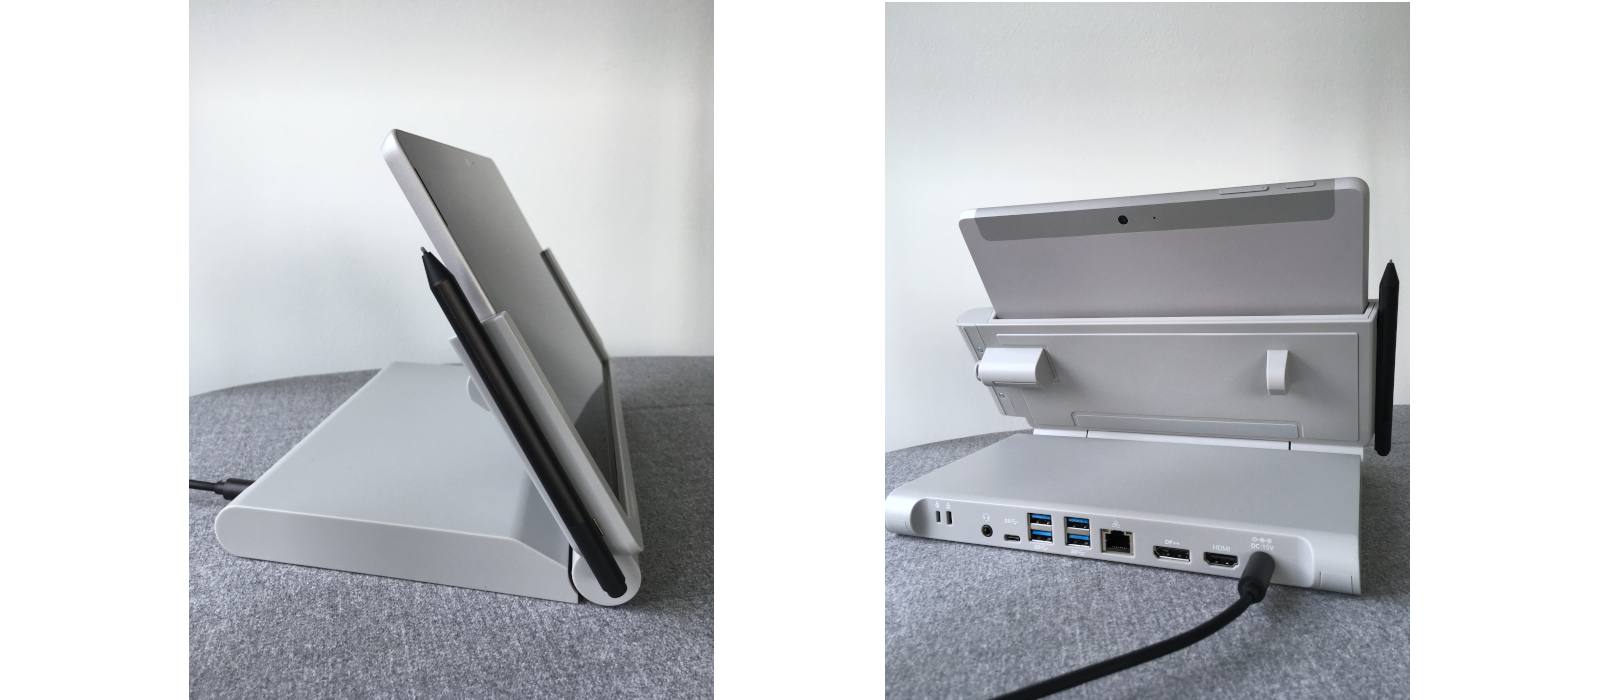 The Kensington® SD6000 Docking Station with the Surface Go and the various connection options